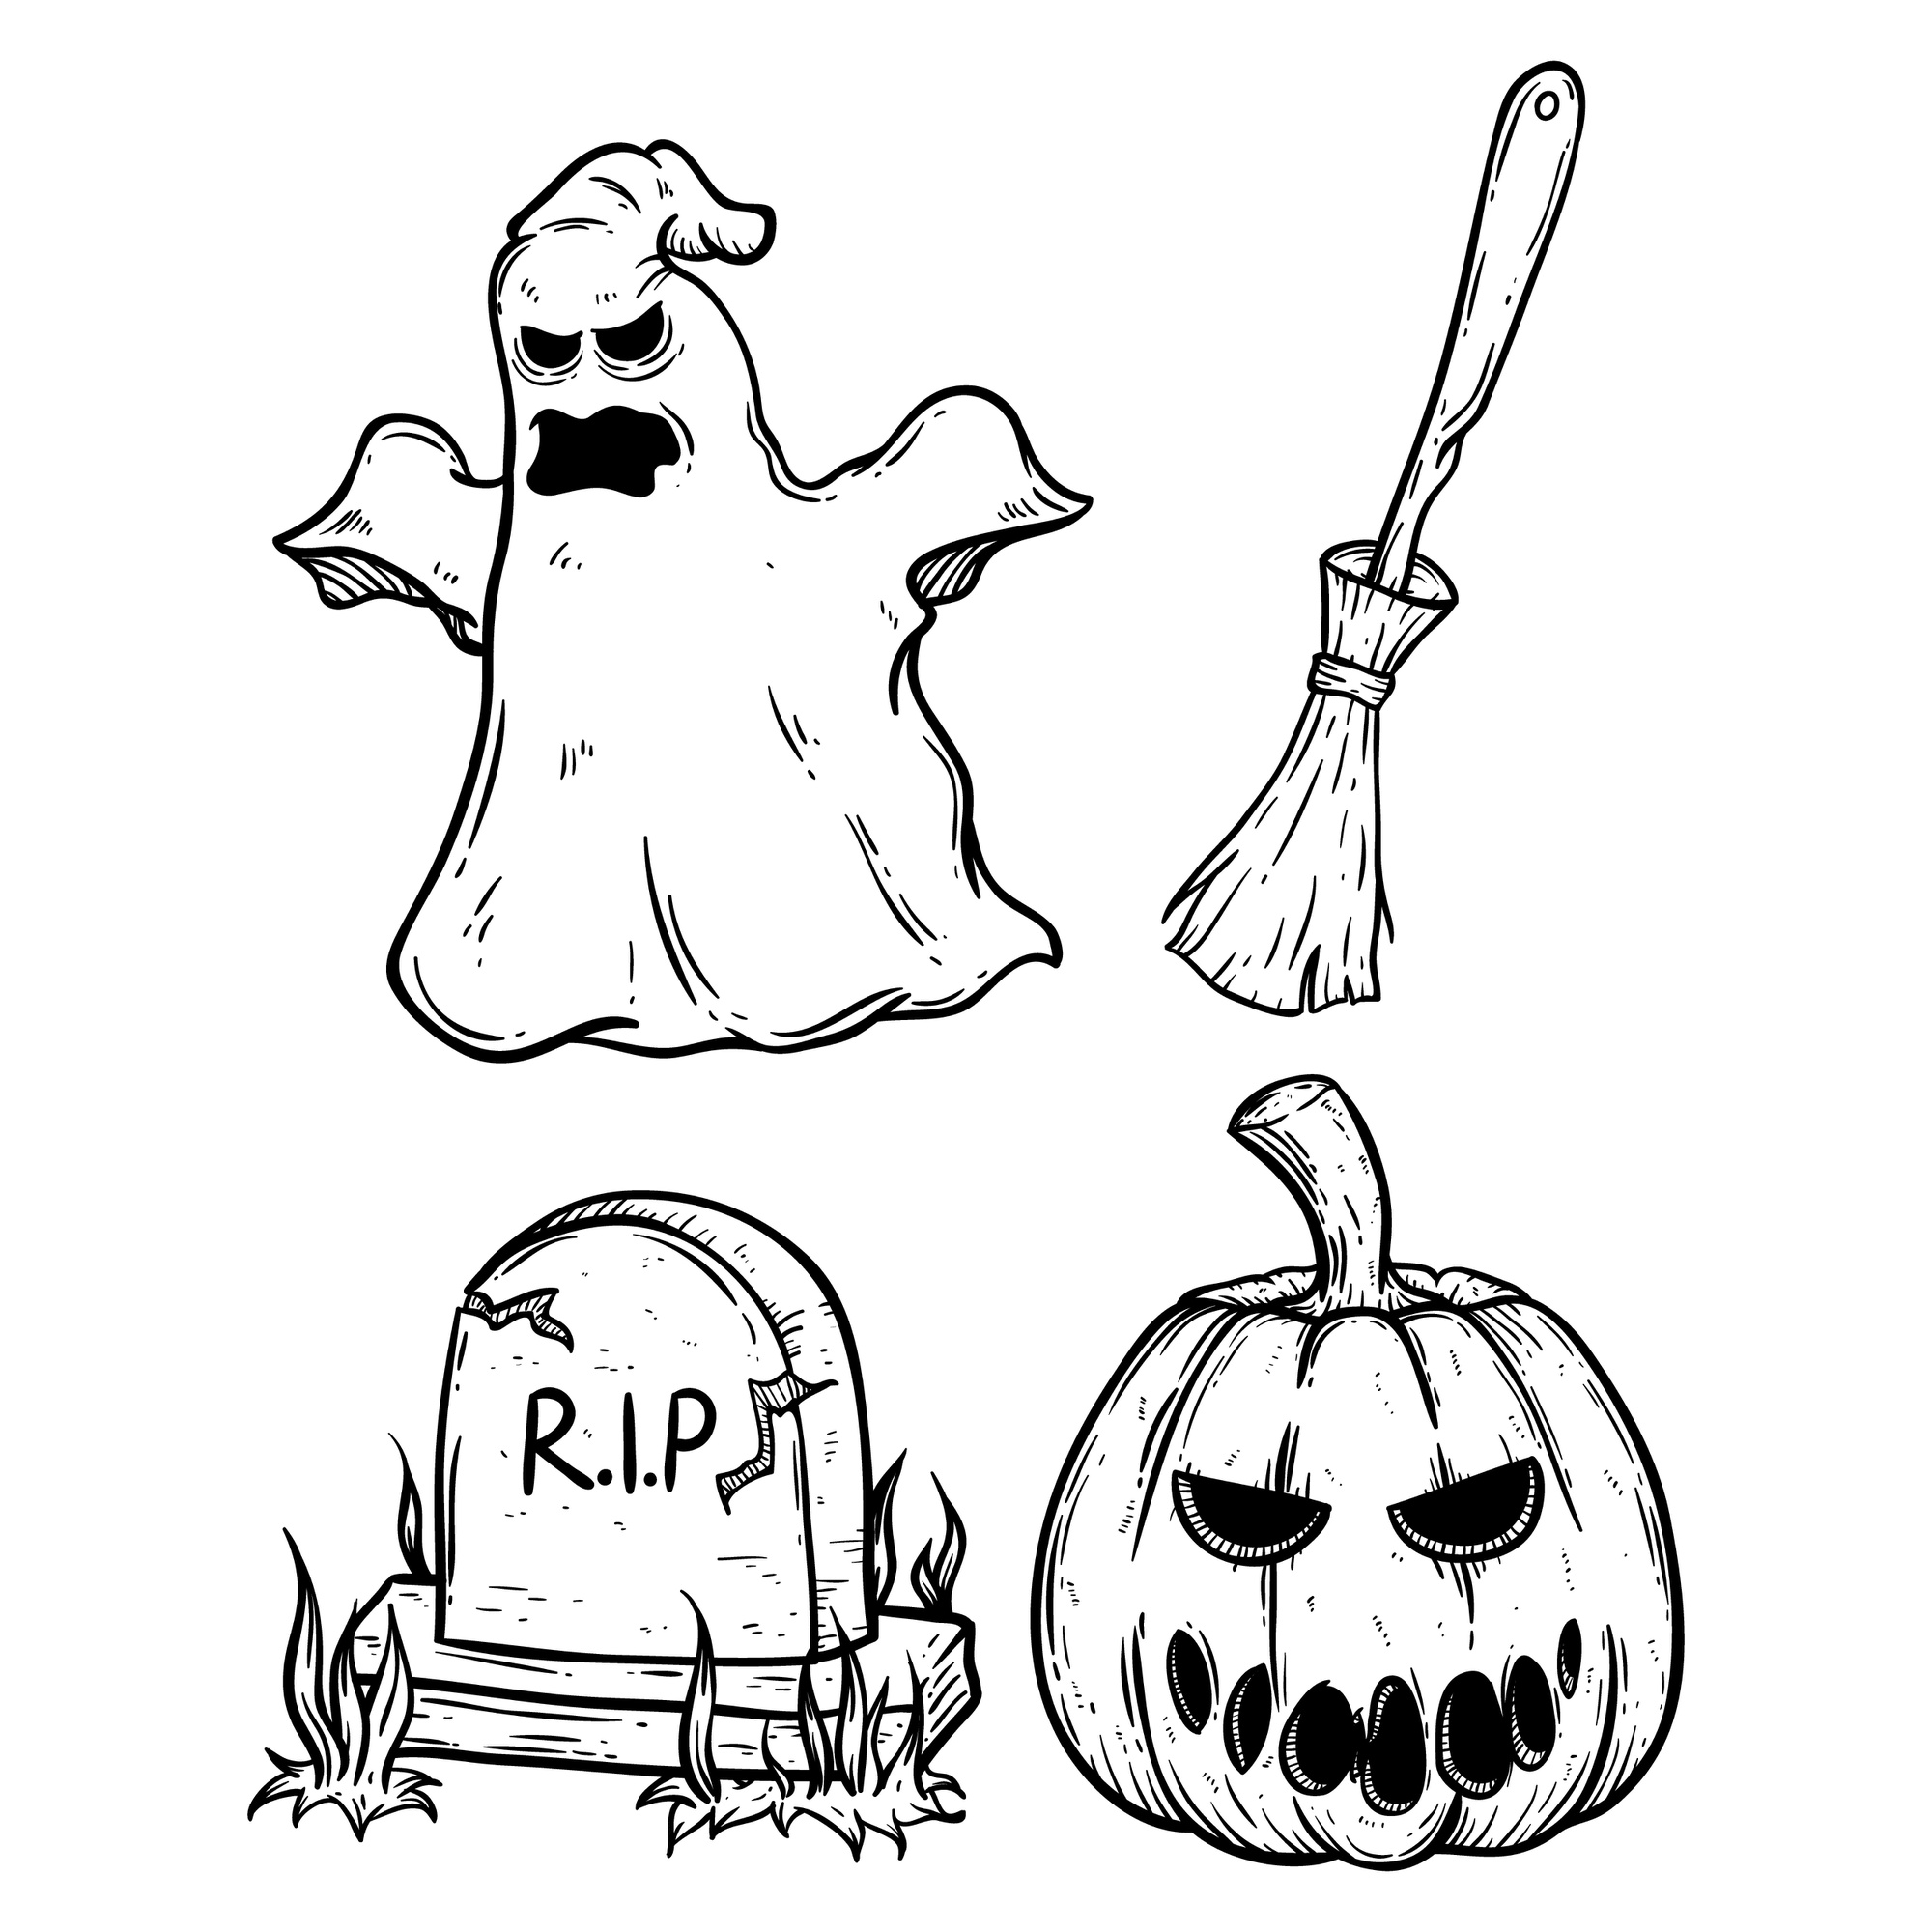 Set of scary halloween icons using doodle art or hand drawing style